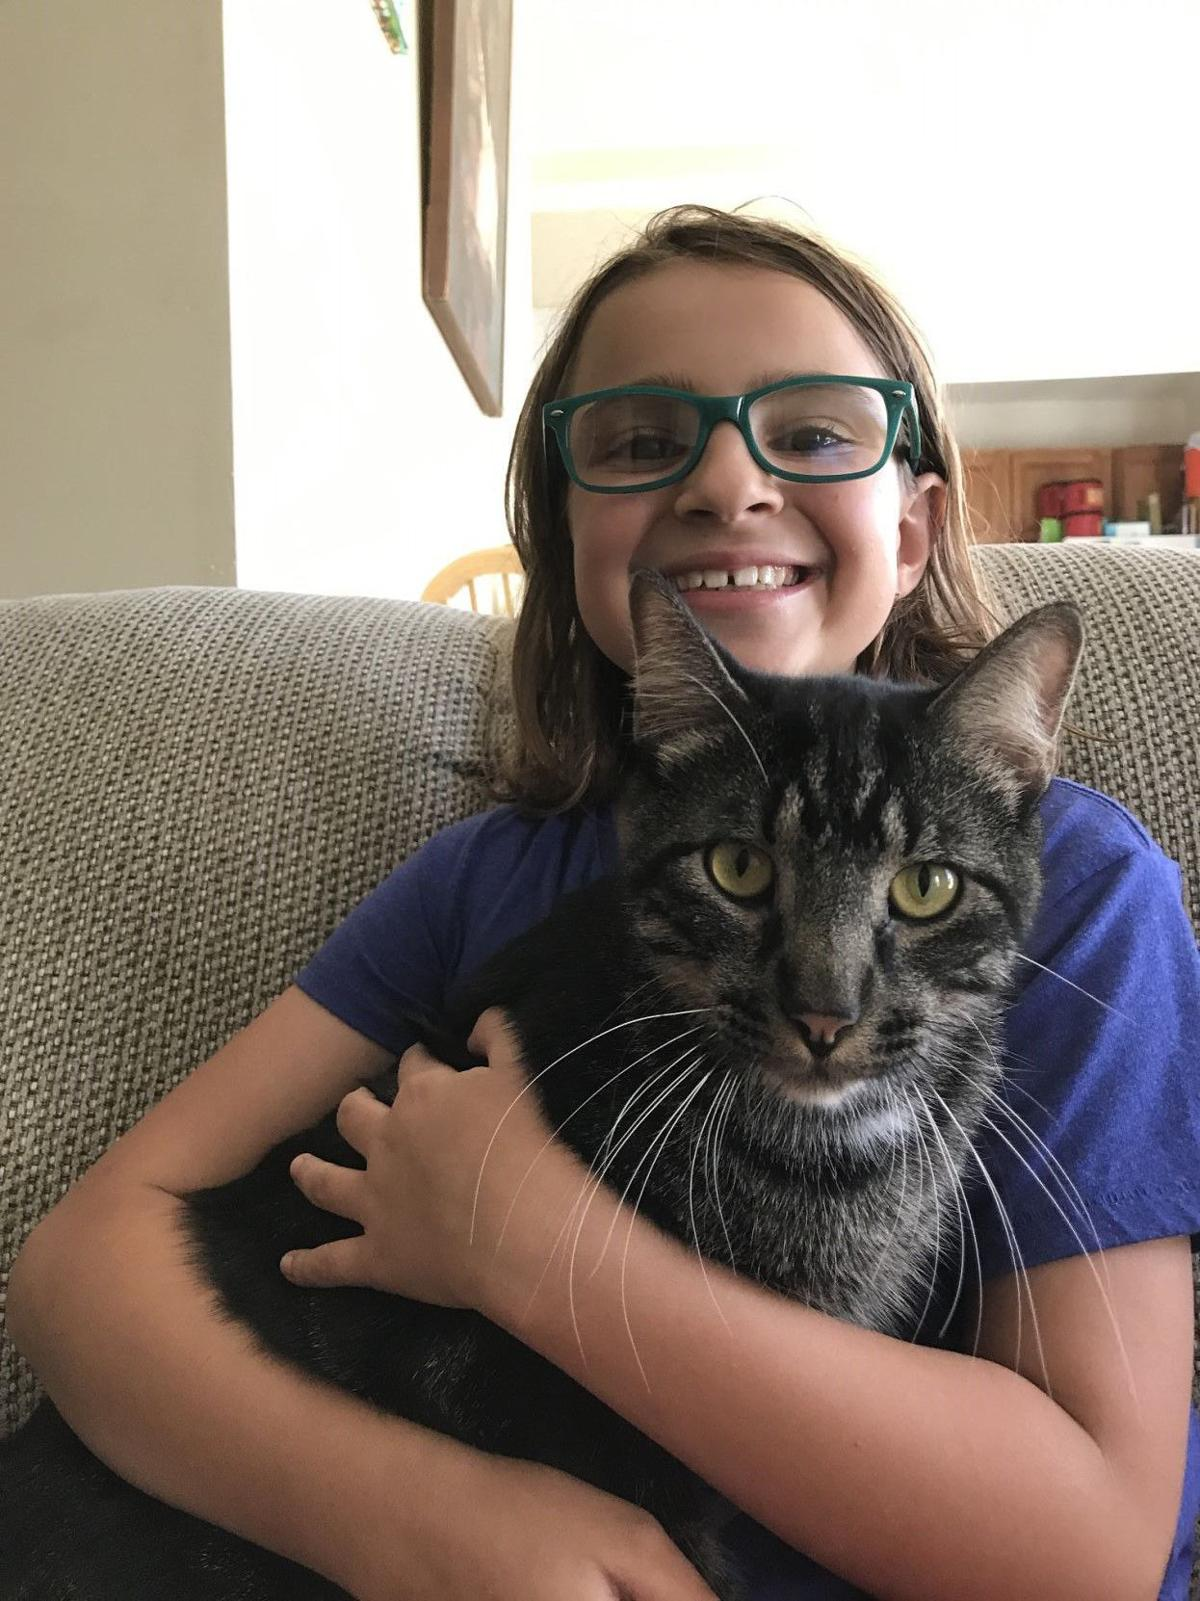 Cat Reunited After Eight Months Apart